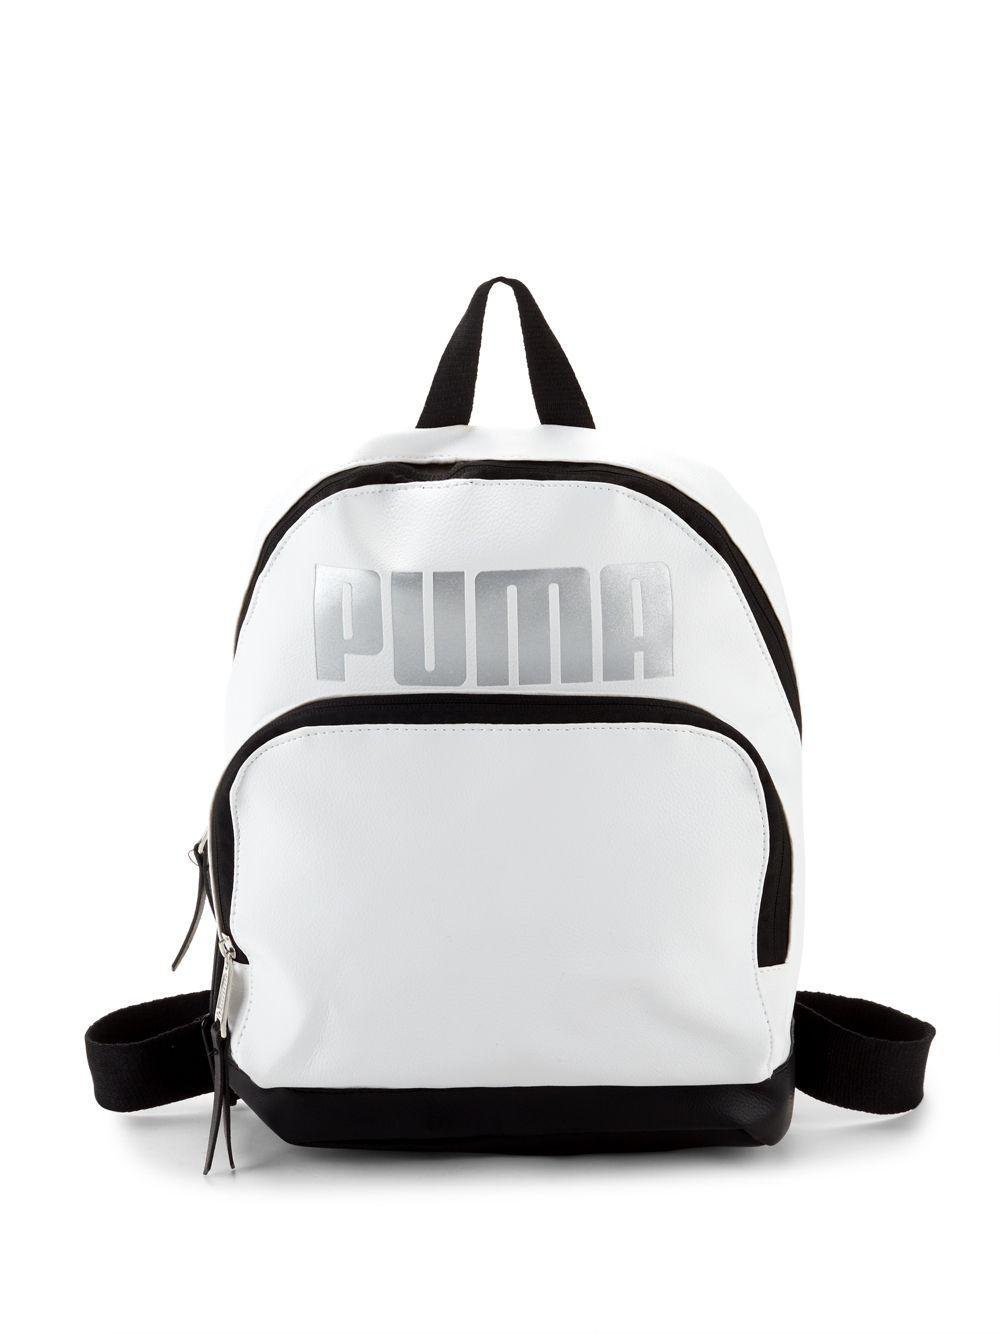 483262dced8 PUMA Evercat Royale Backpack in Black - Lyst